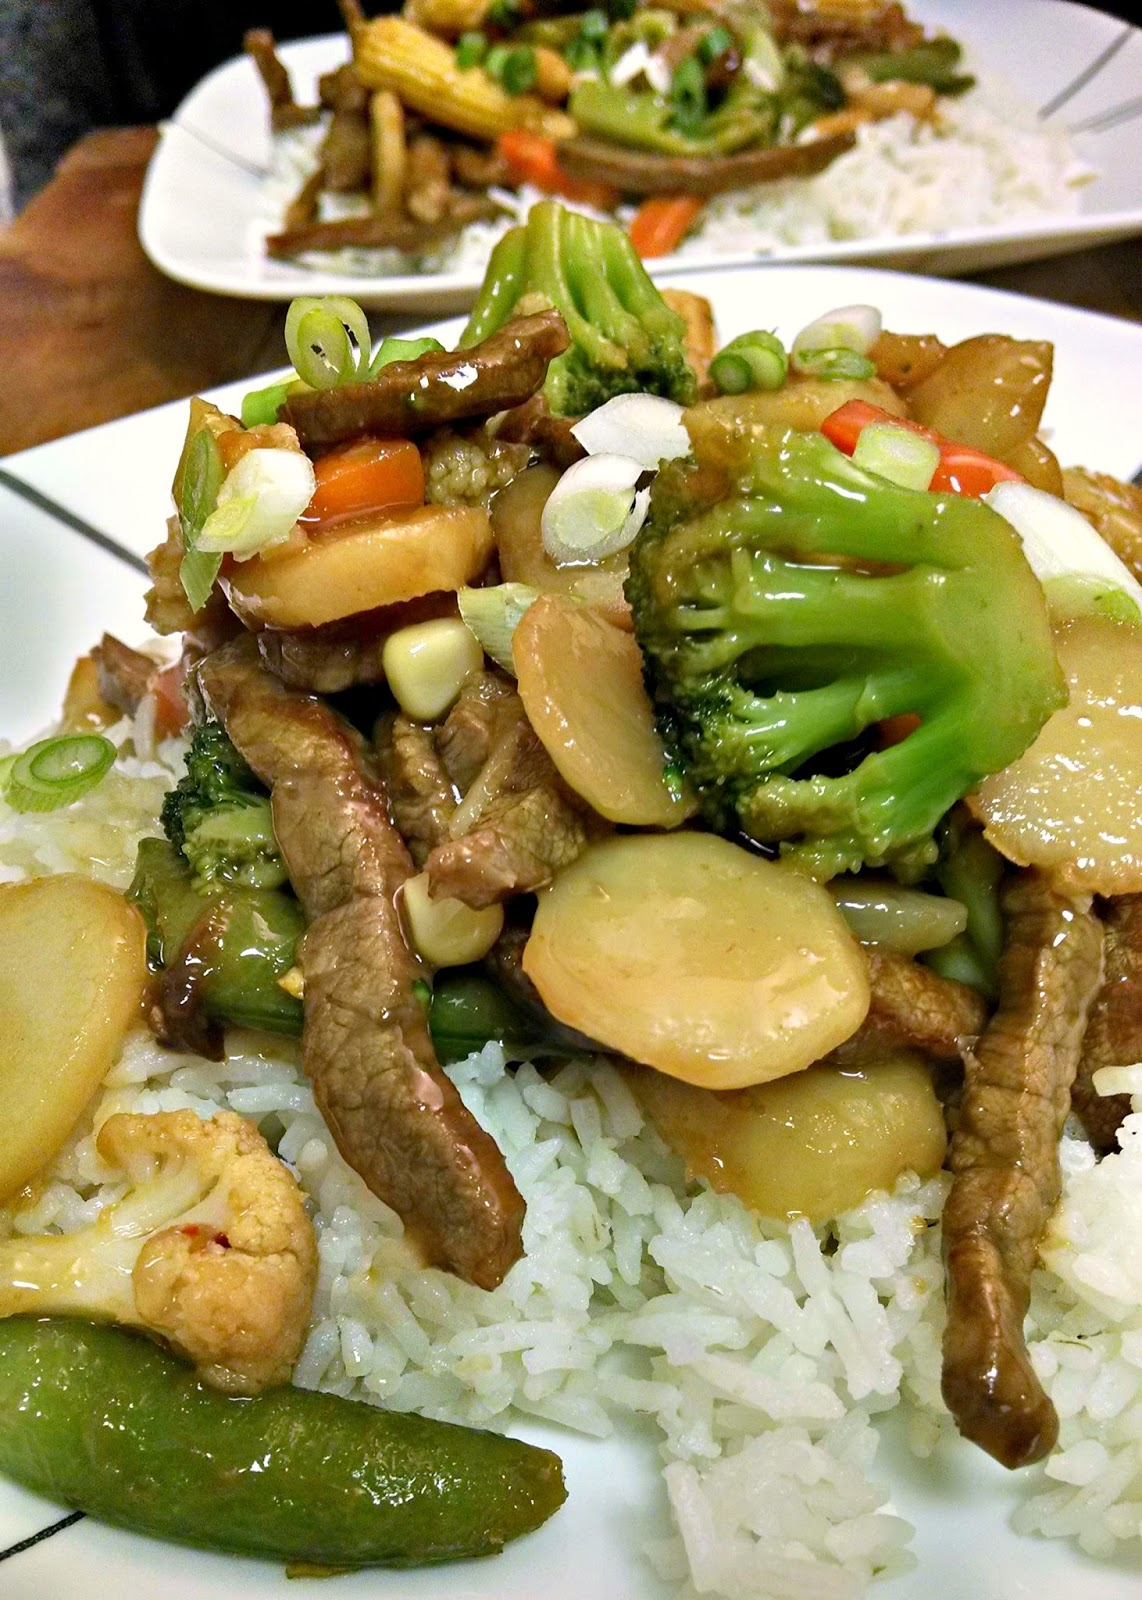 Tangy orange juice is mixed with ginger in this easy stir-fry. Spicy Orange Ginger Beef Stir-Fry is a family favorite take-in recipe.